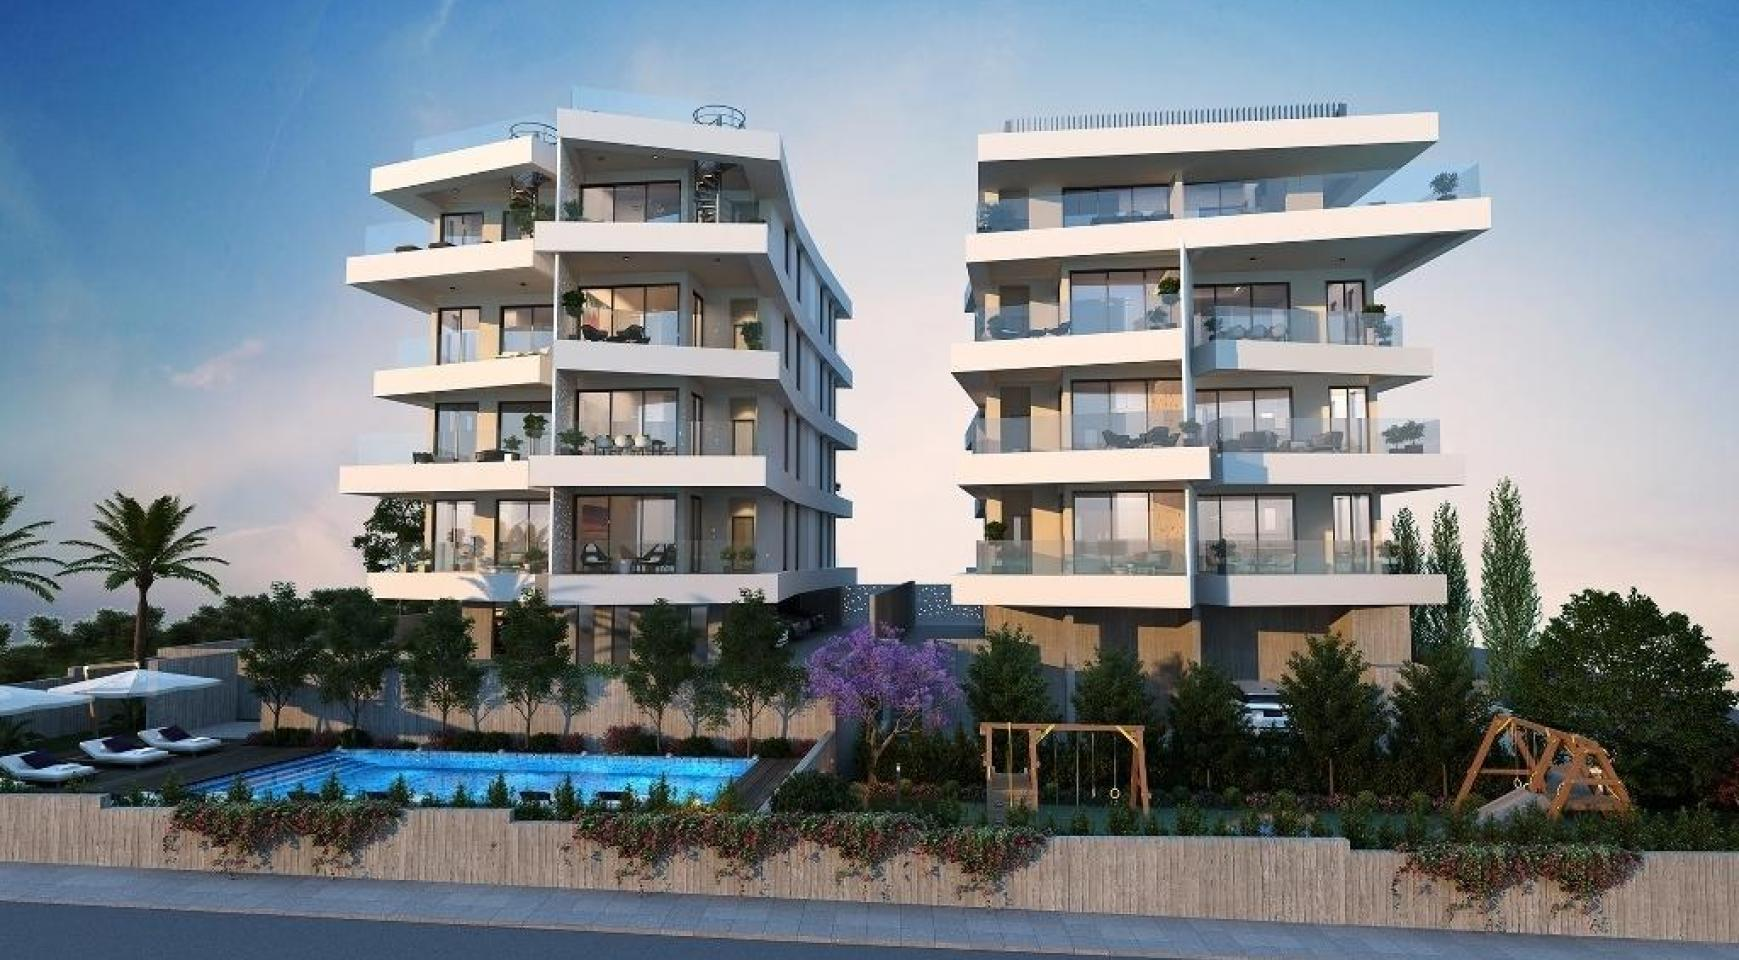 New 2 Bedroom Apartment in a Contemporary Building in Germasogeia Area - 5